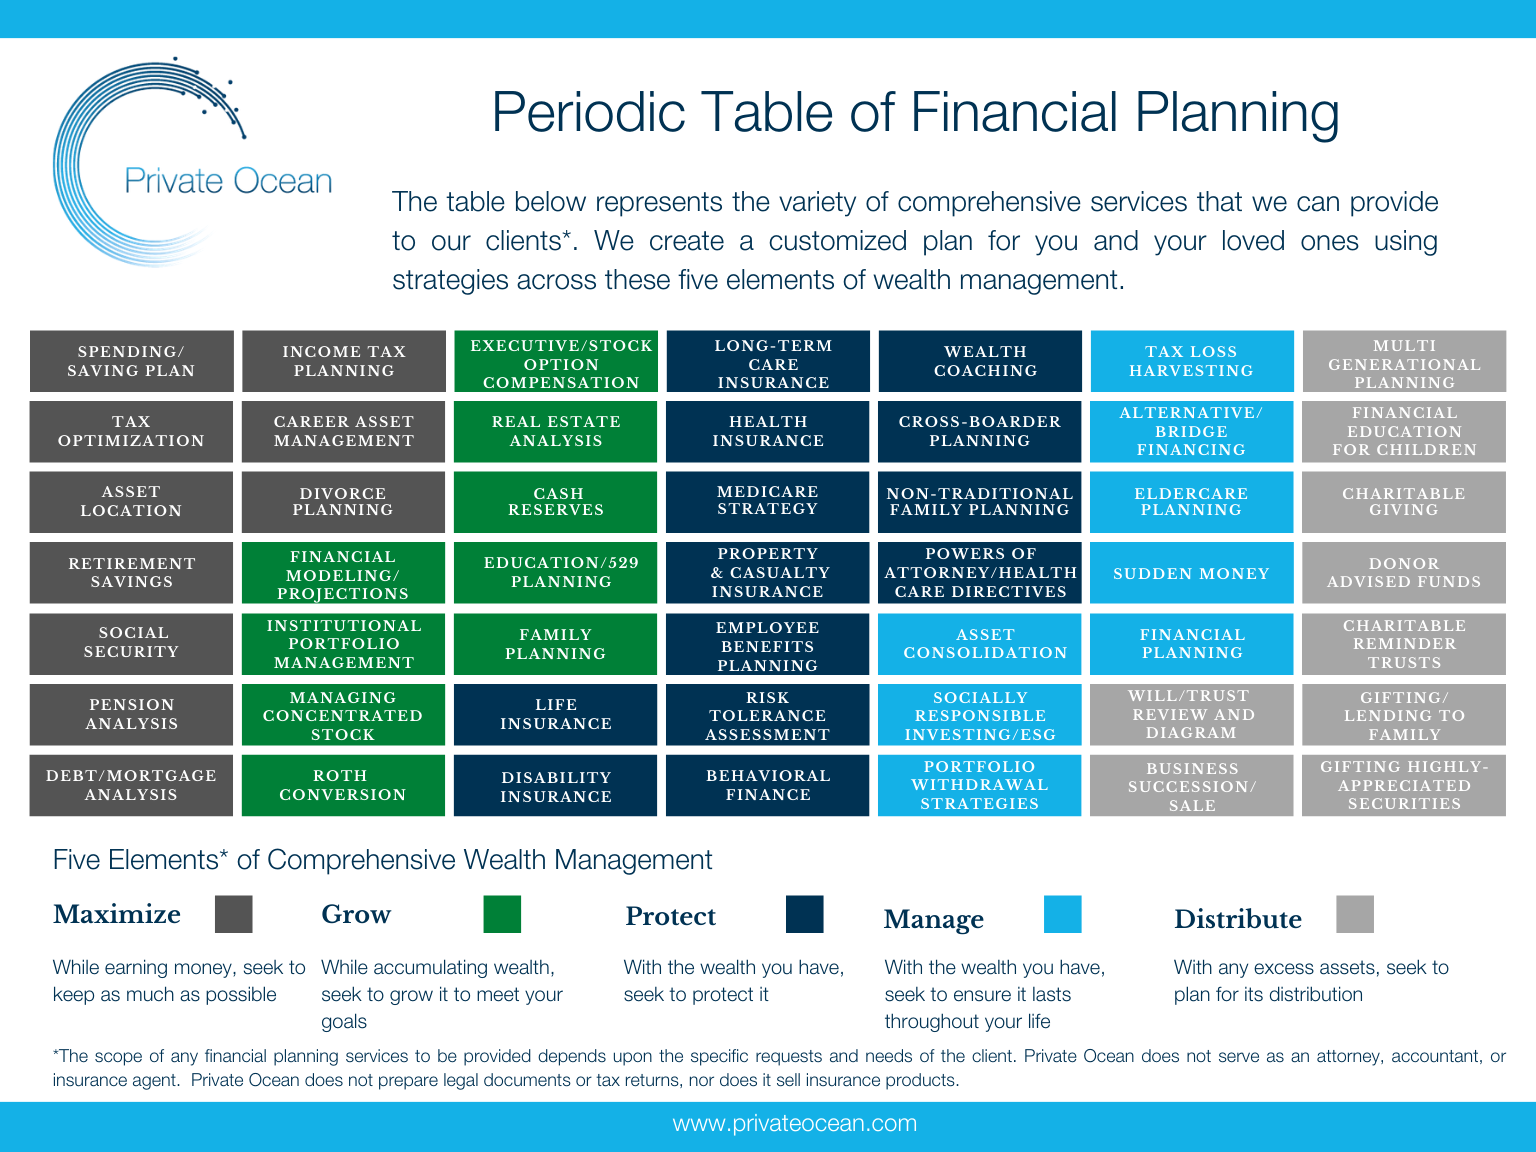 Periodic table of financial planning[3]